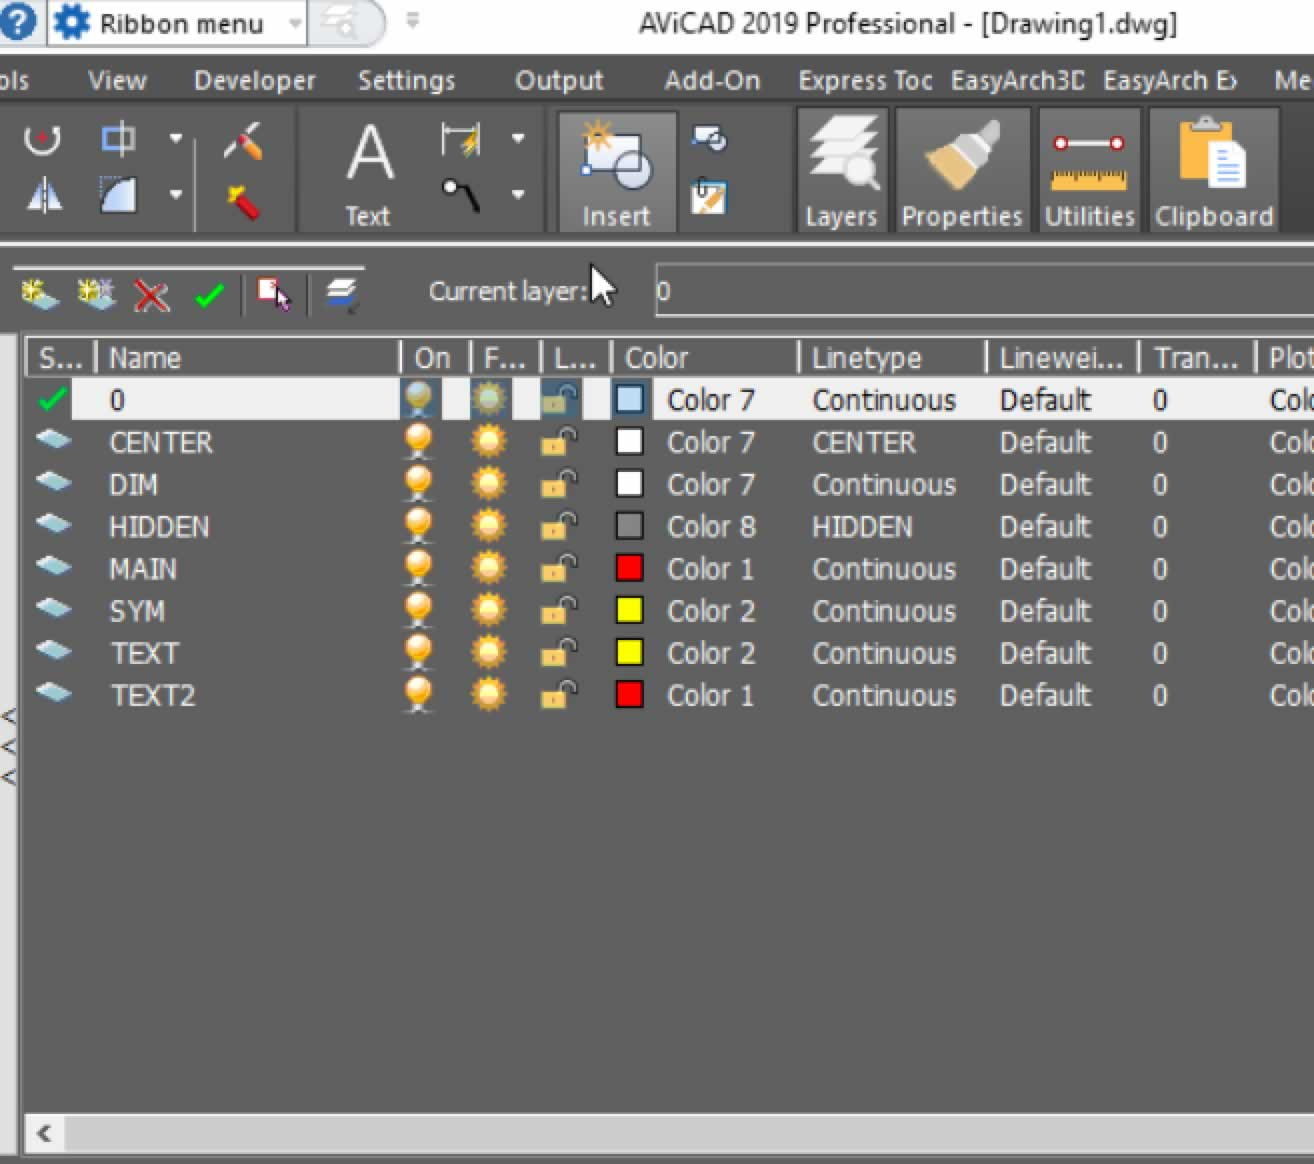 AViCAD layer dialog menu